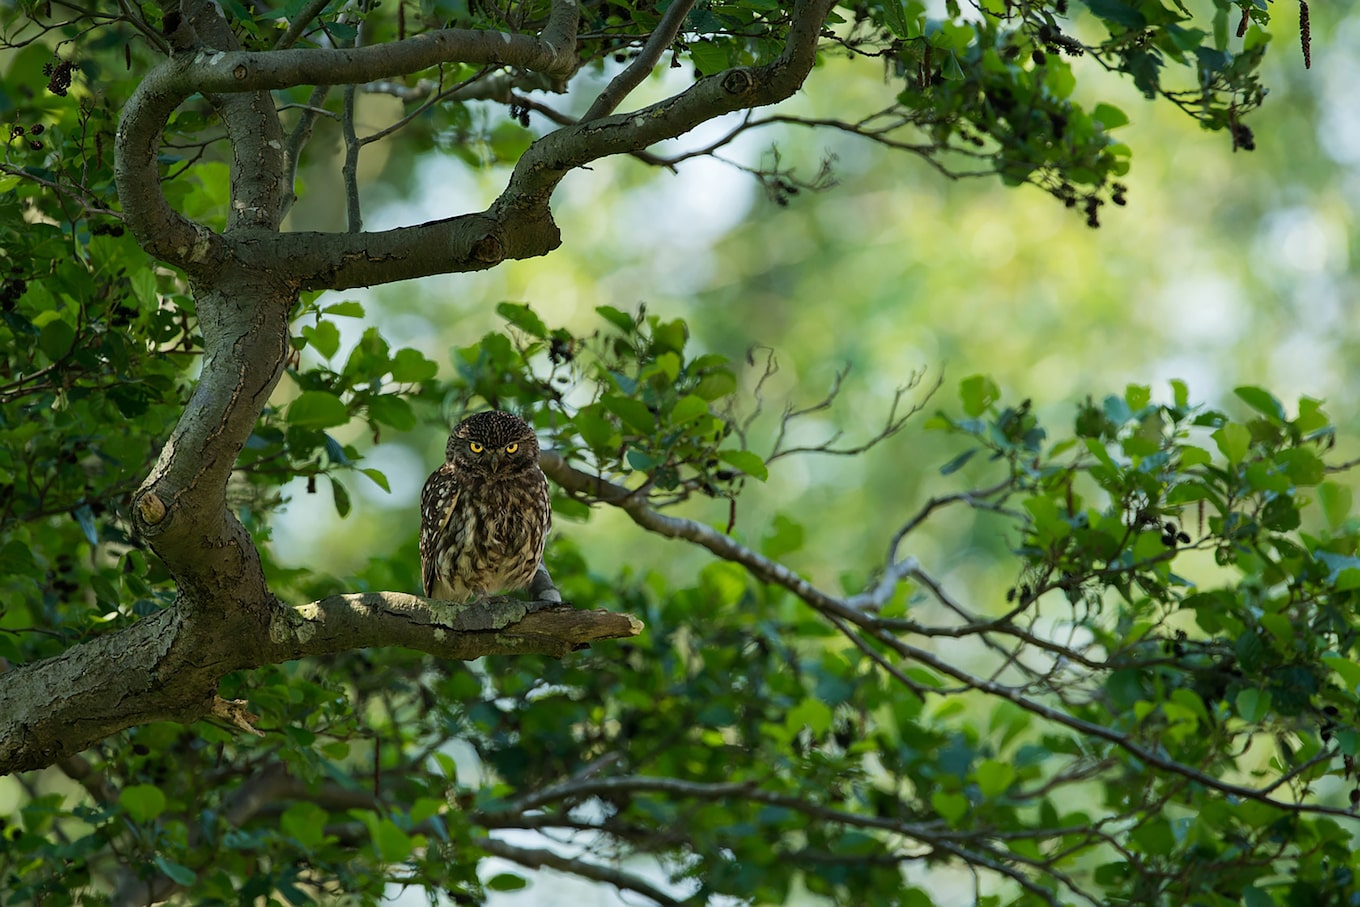 gustav-kiburg-sony-alpha-7RII-owl-sits-patiently-in-tree